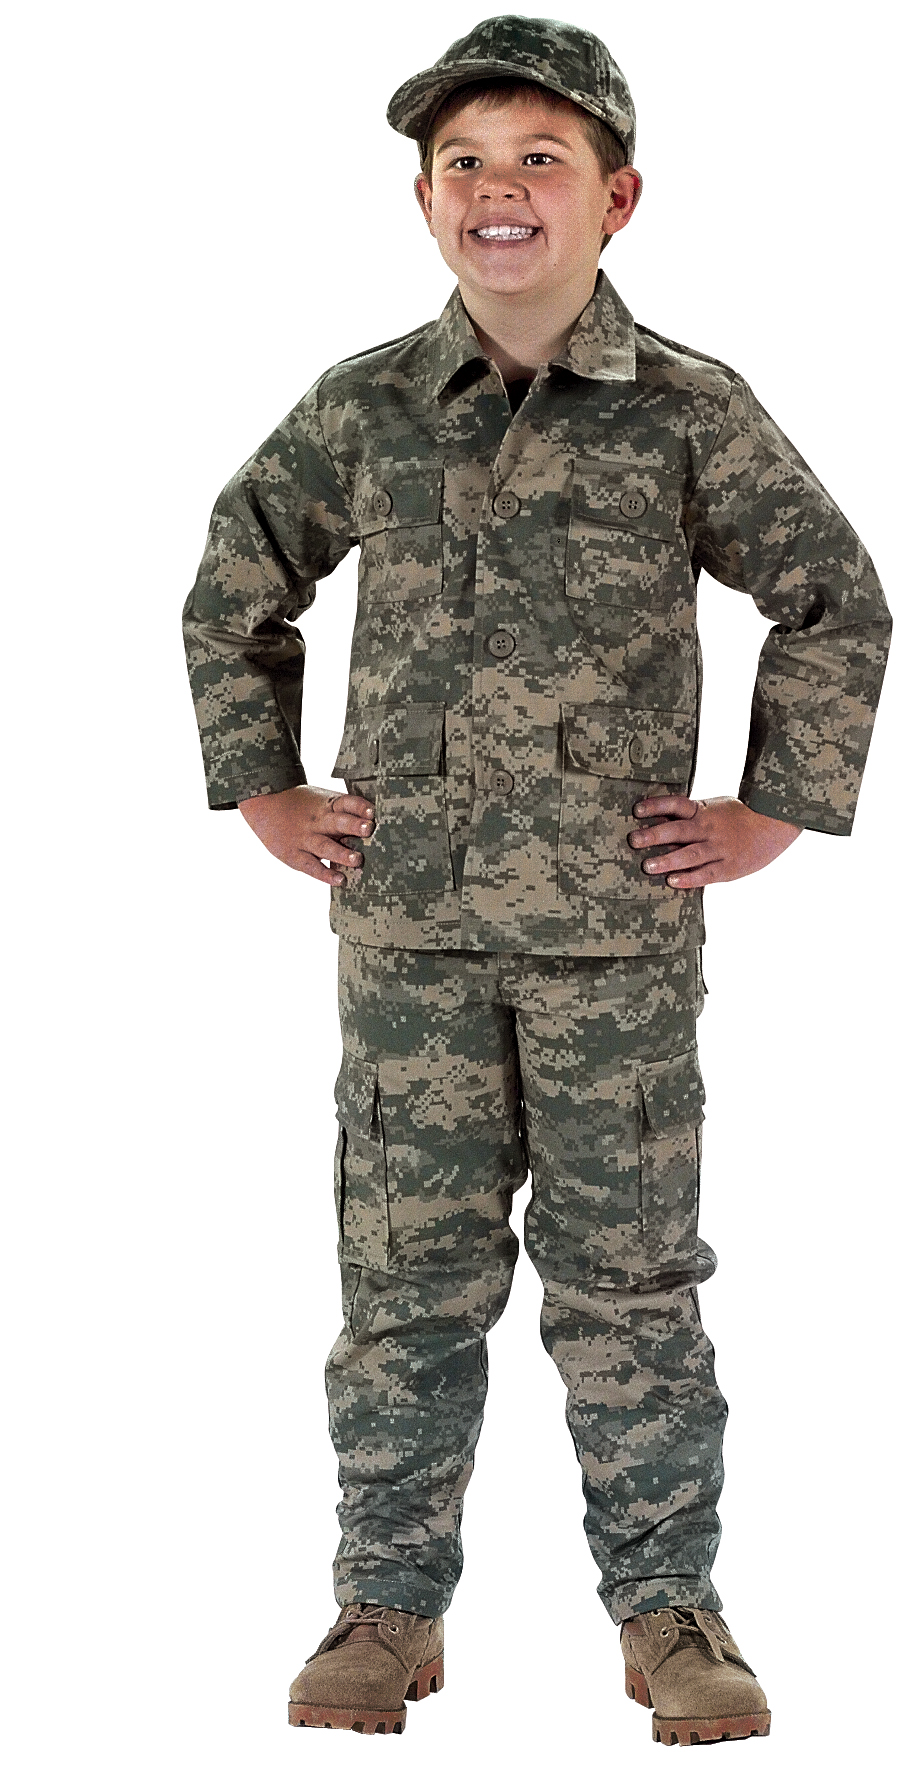 children's uniforms, kid's uniforms, kids military uniforms, kids ...